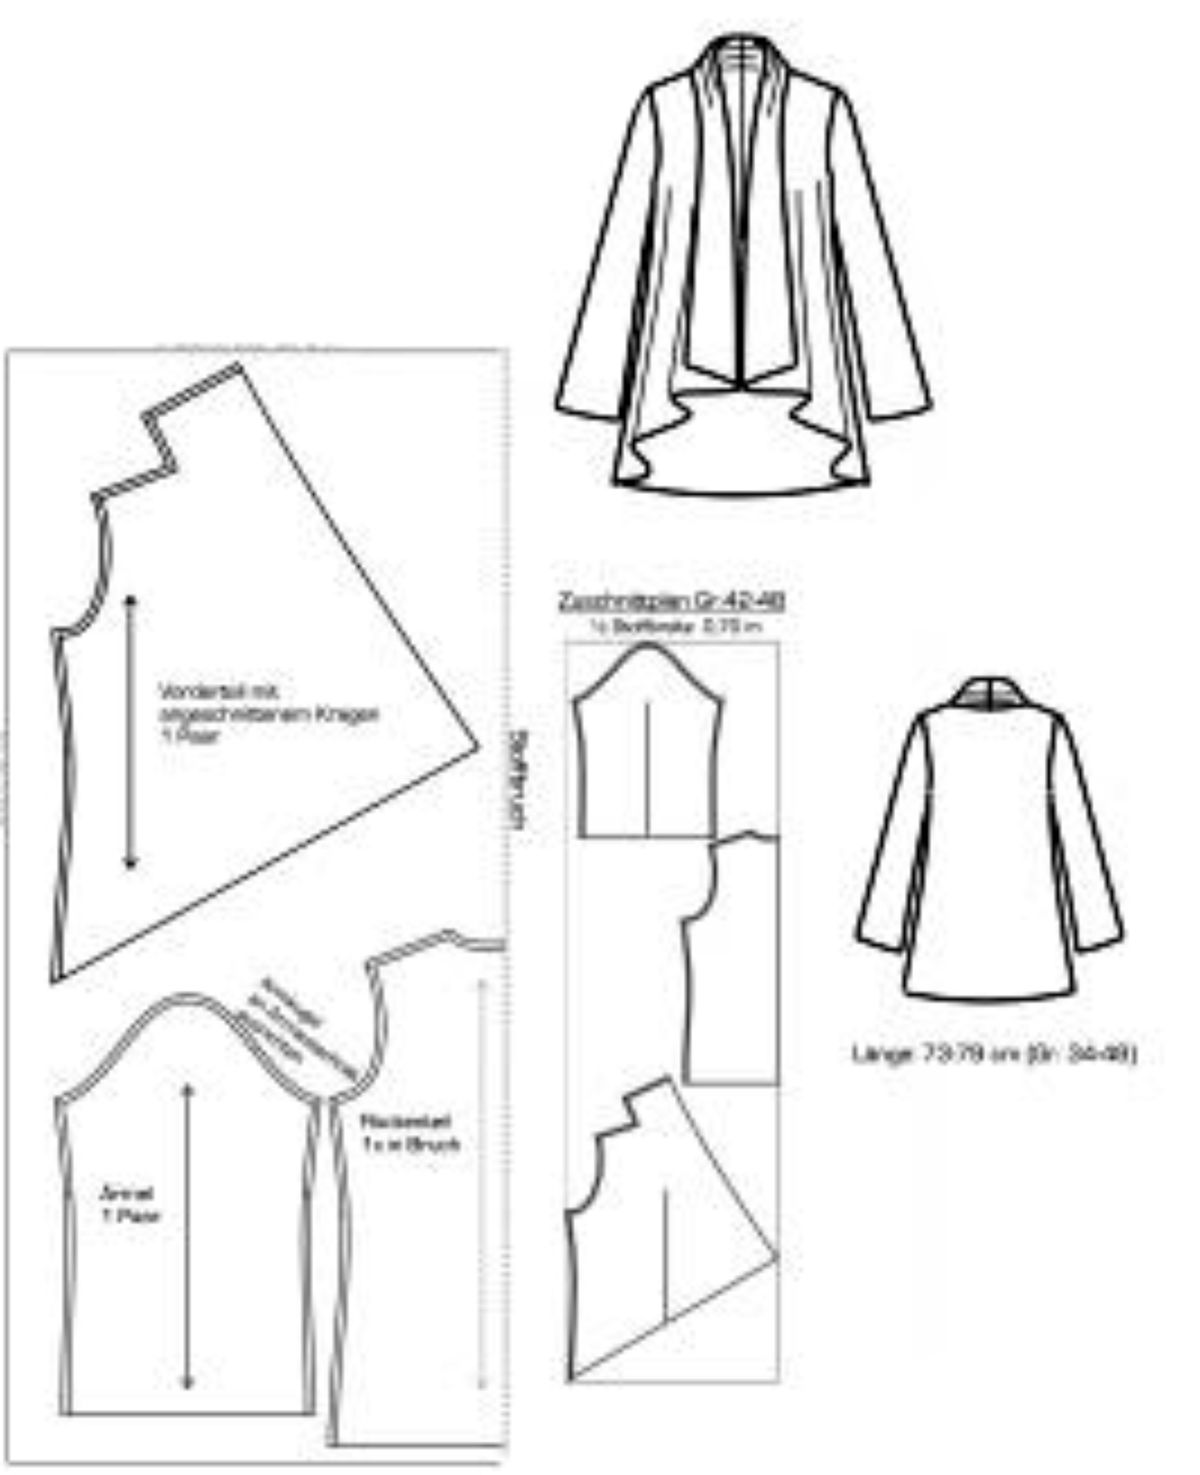 Understanding Stair Parts further Poodle Skirt Tutorial For 18 Inch Doll additionally 4327 in addition 215680269627324668 moreover Free Barbie Doll Clothes Patterns. on circle skirt pattern